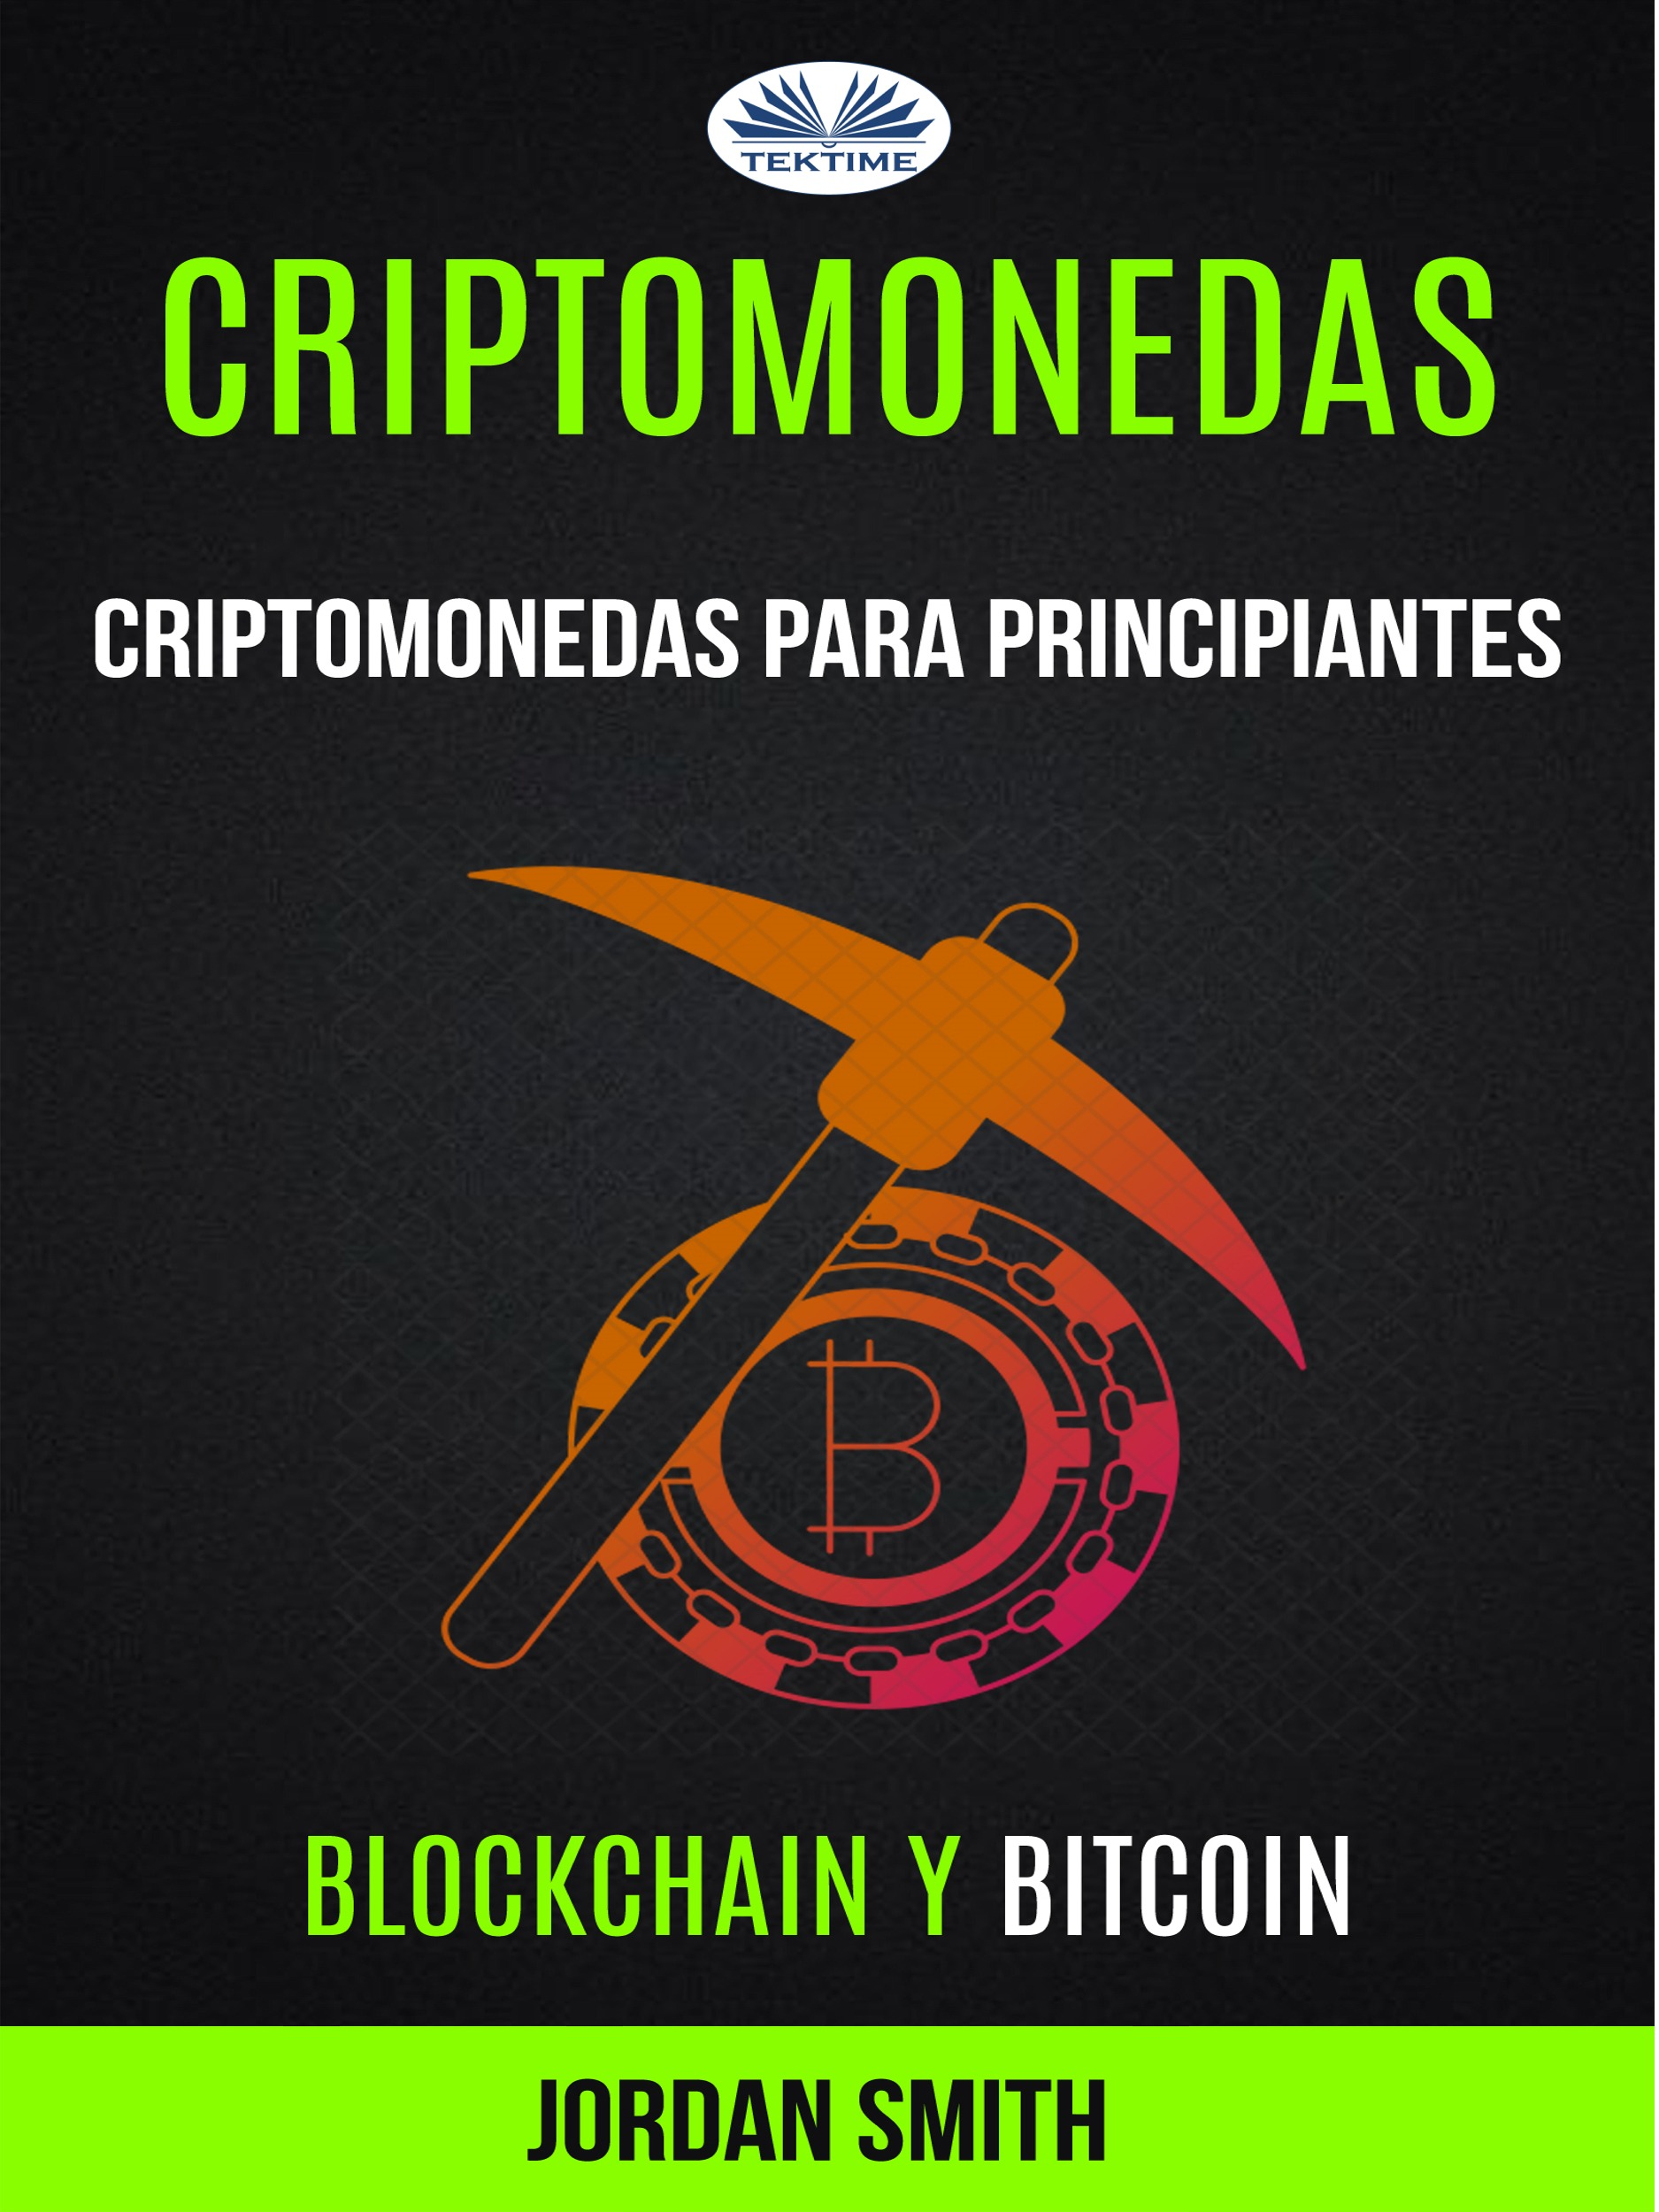 Jordan Smith Criptomonedas цены